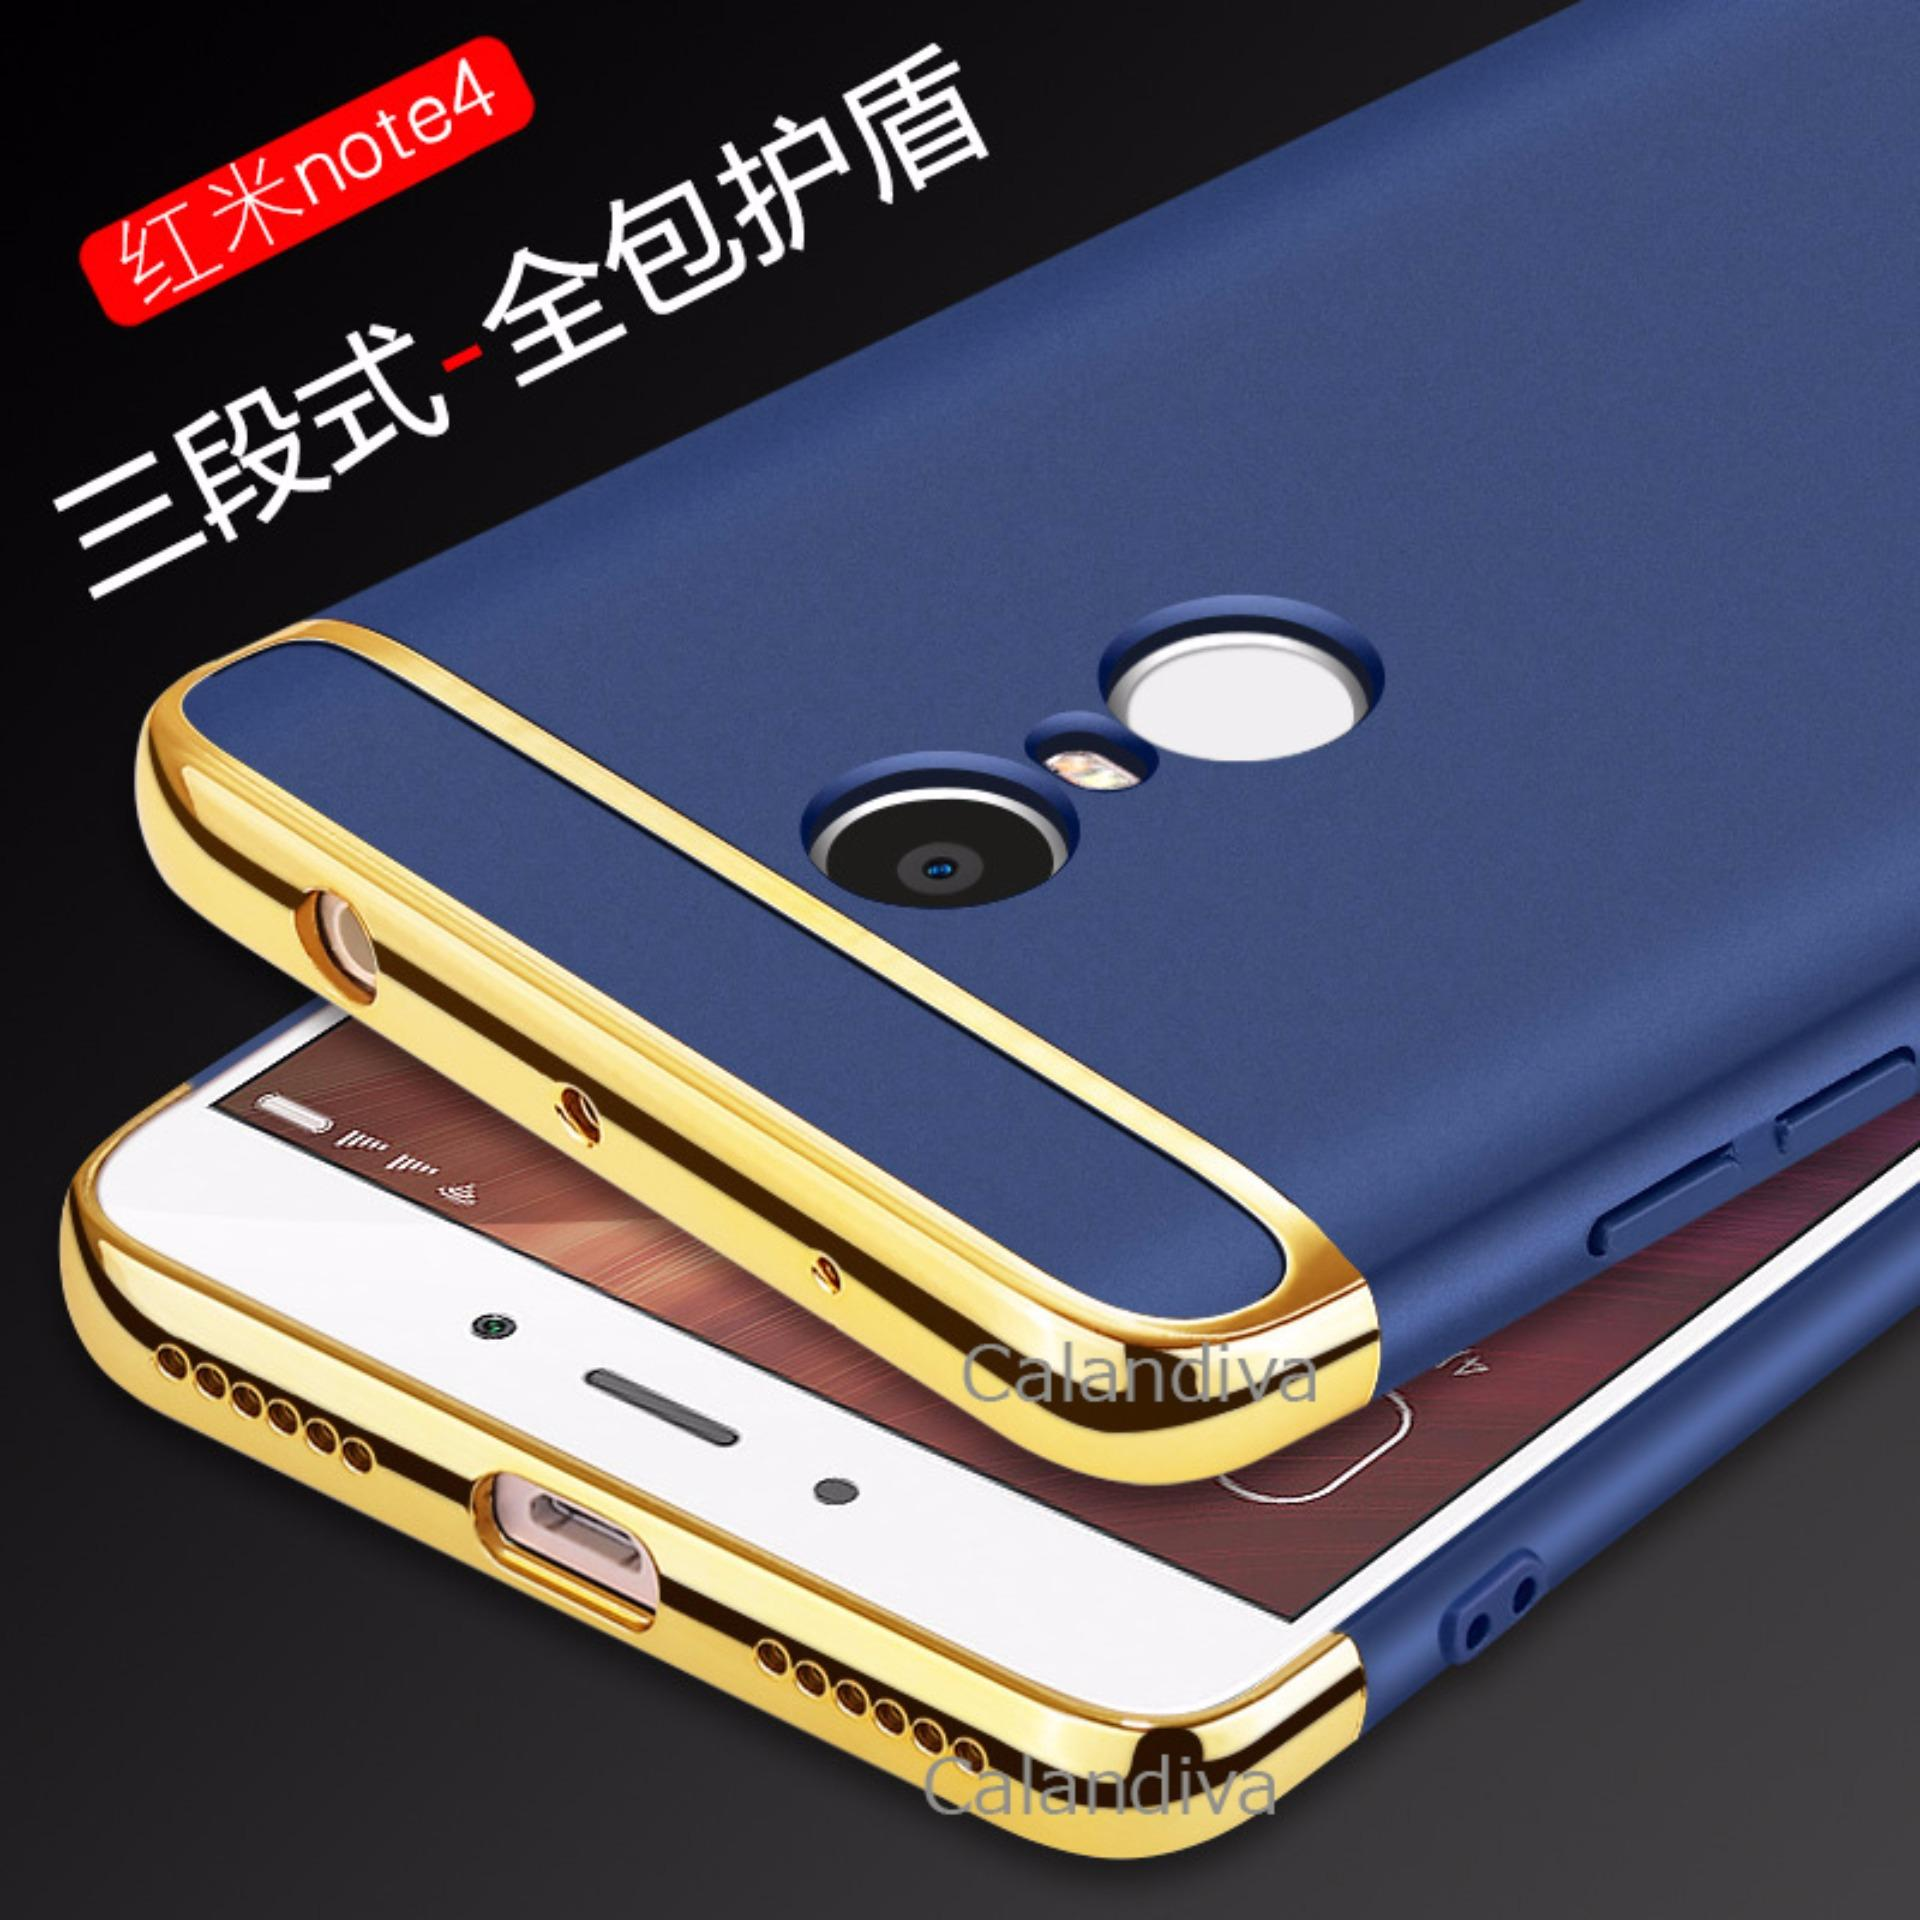 Calandiva Premium Quality Elegance Protection Hardcase for Xiaomi Redmi Note 4 Mediatek / Redmi Note 4x ...